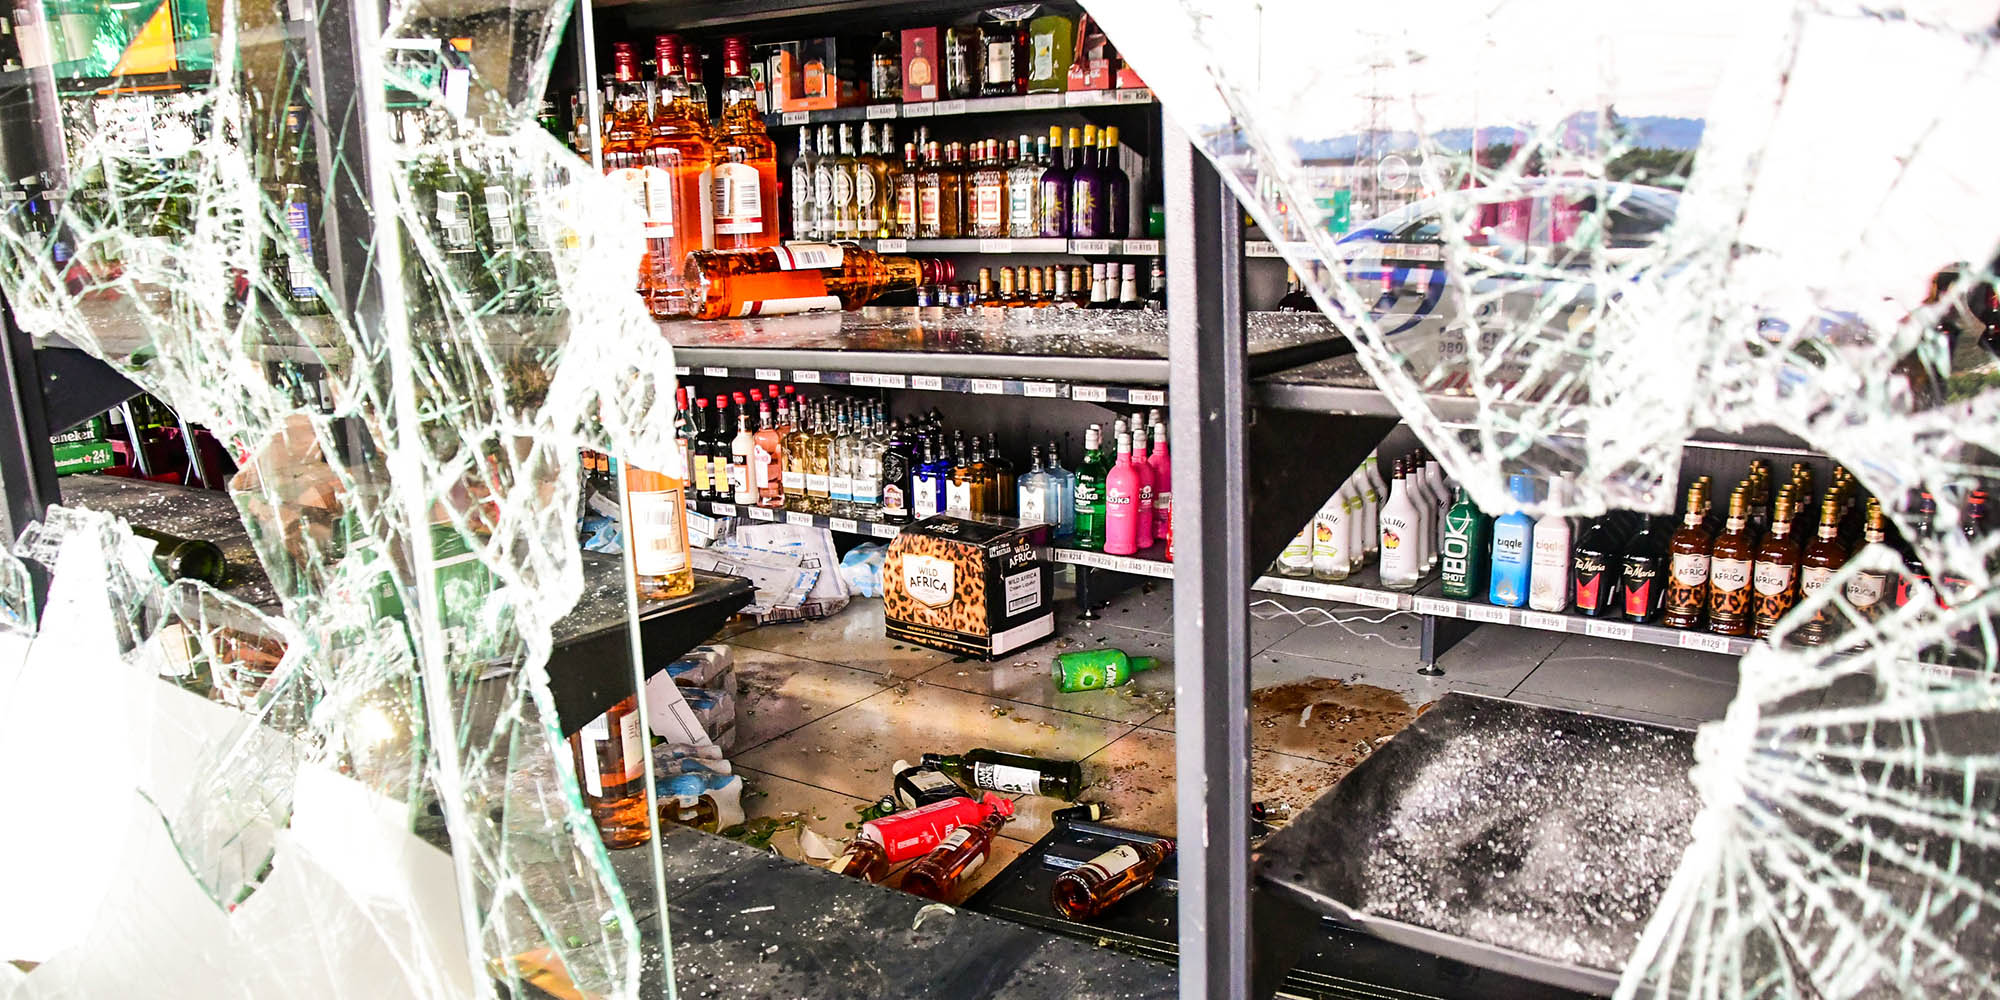 Beleaguered alcohol industry crippled further by looting